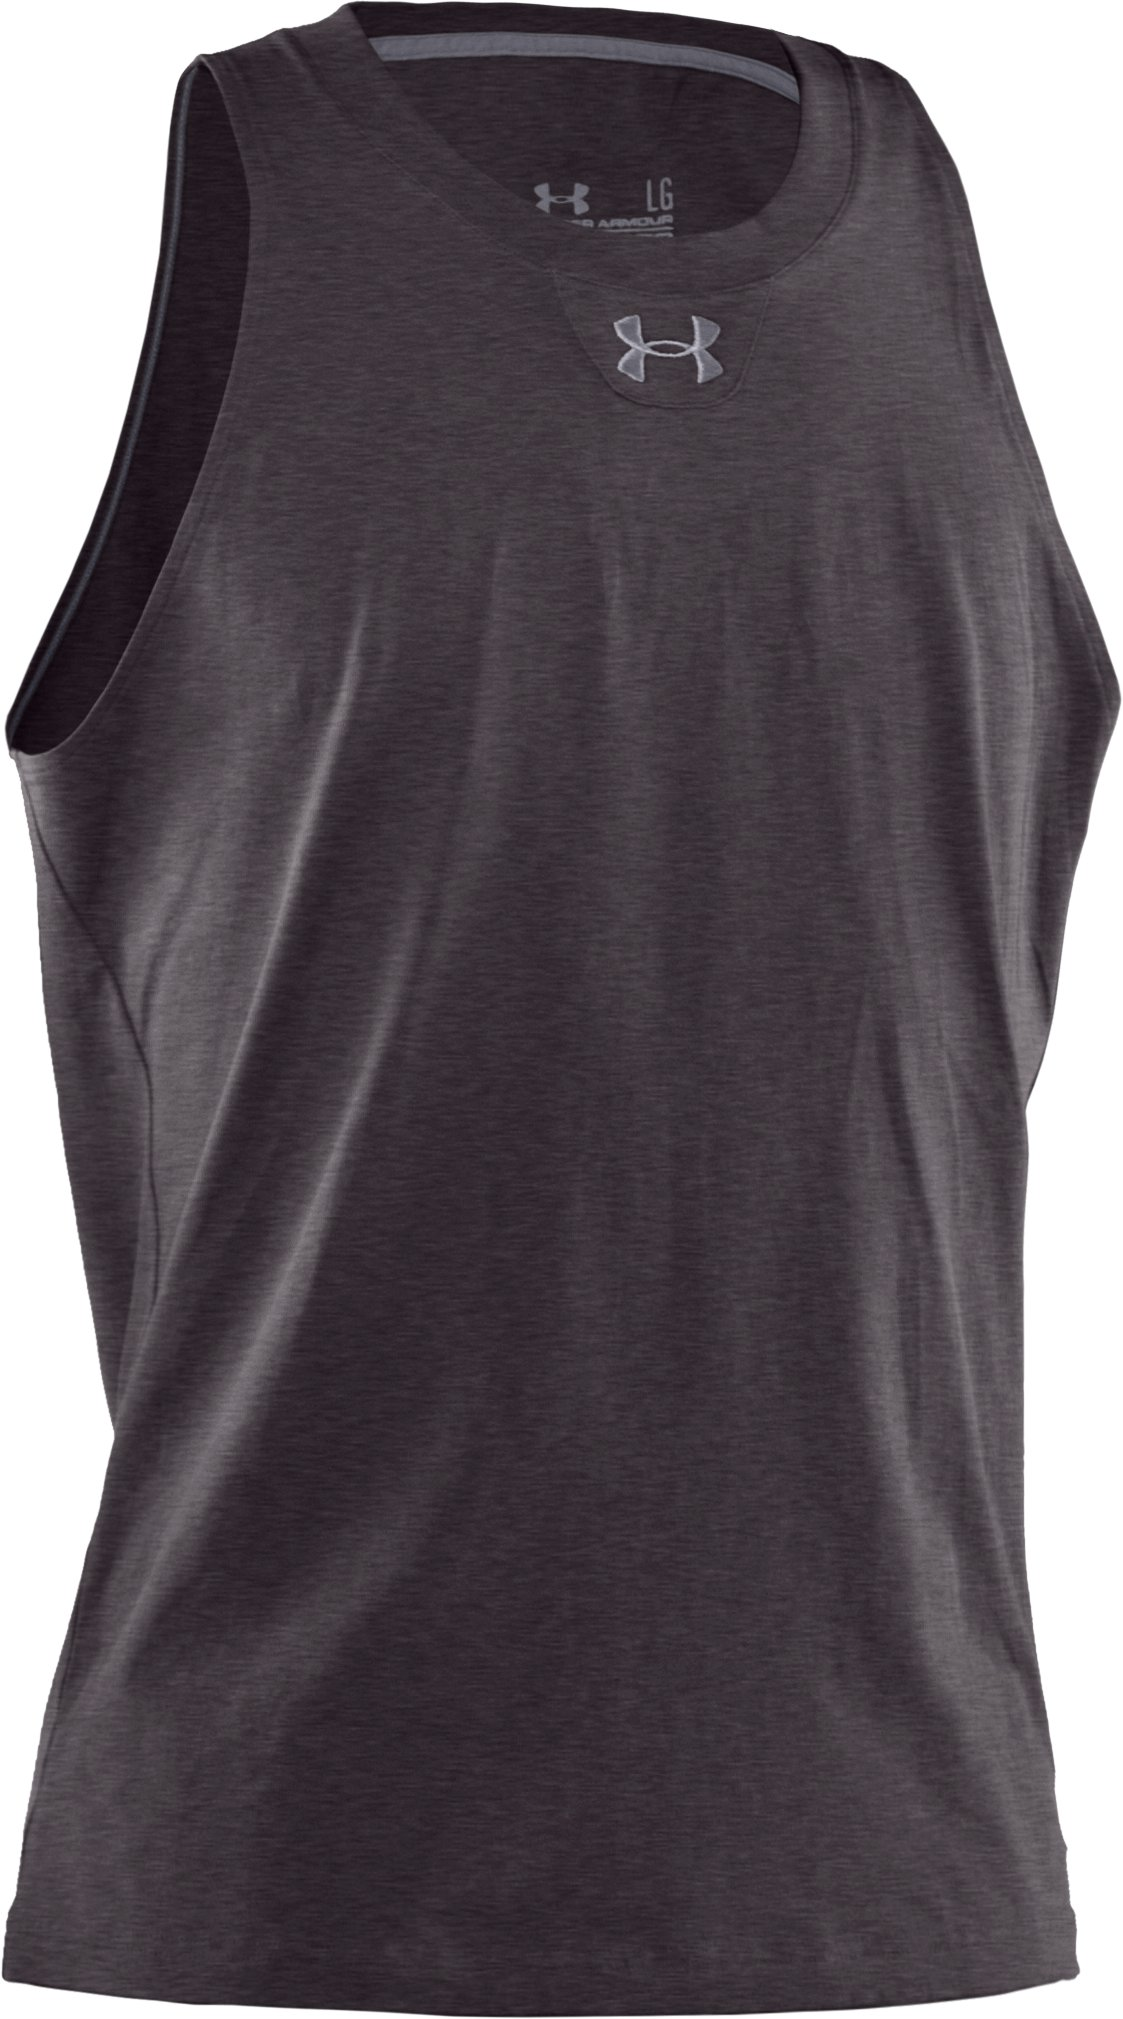 Men's Charged Cotton® Tank, Carbon Heather